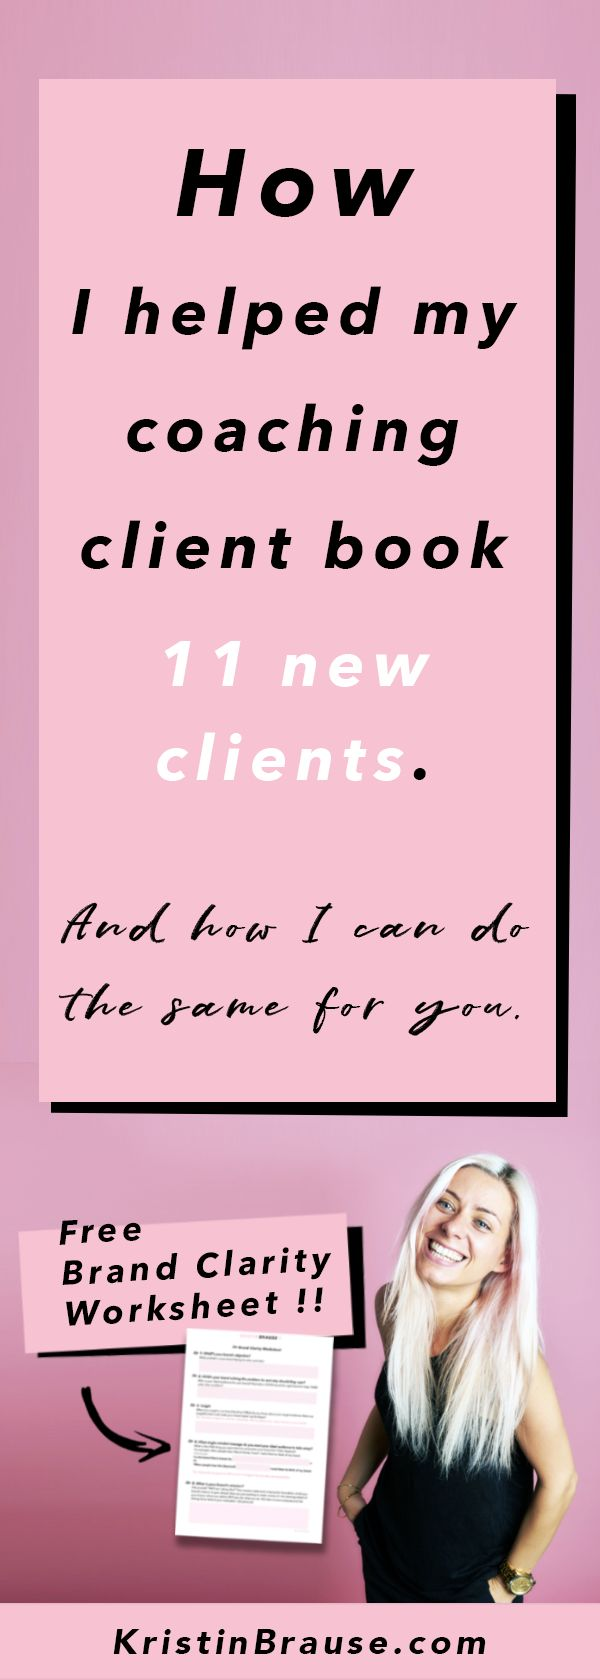 How I helped my coaching client book 11 new clients and how I can help you do the same for your brand. Download my free brand clarity worksheet to do the exact same exercise I did with my client.